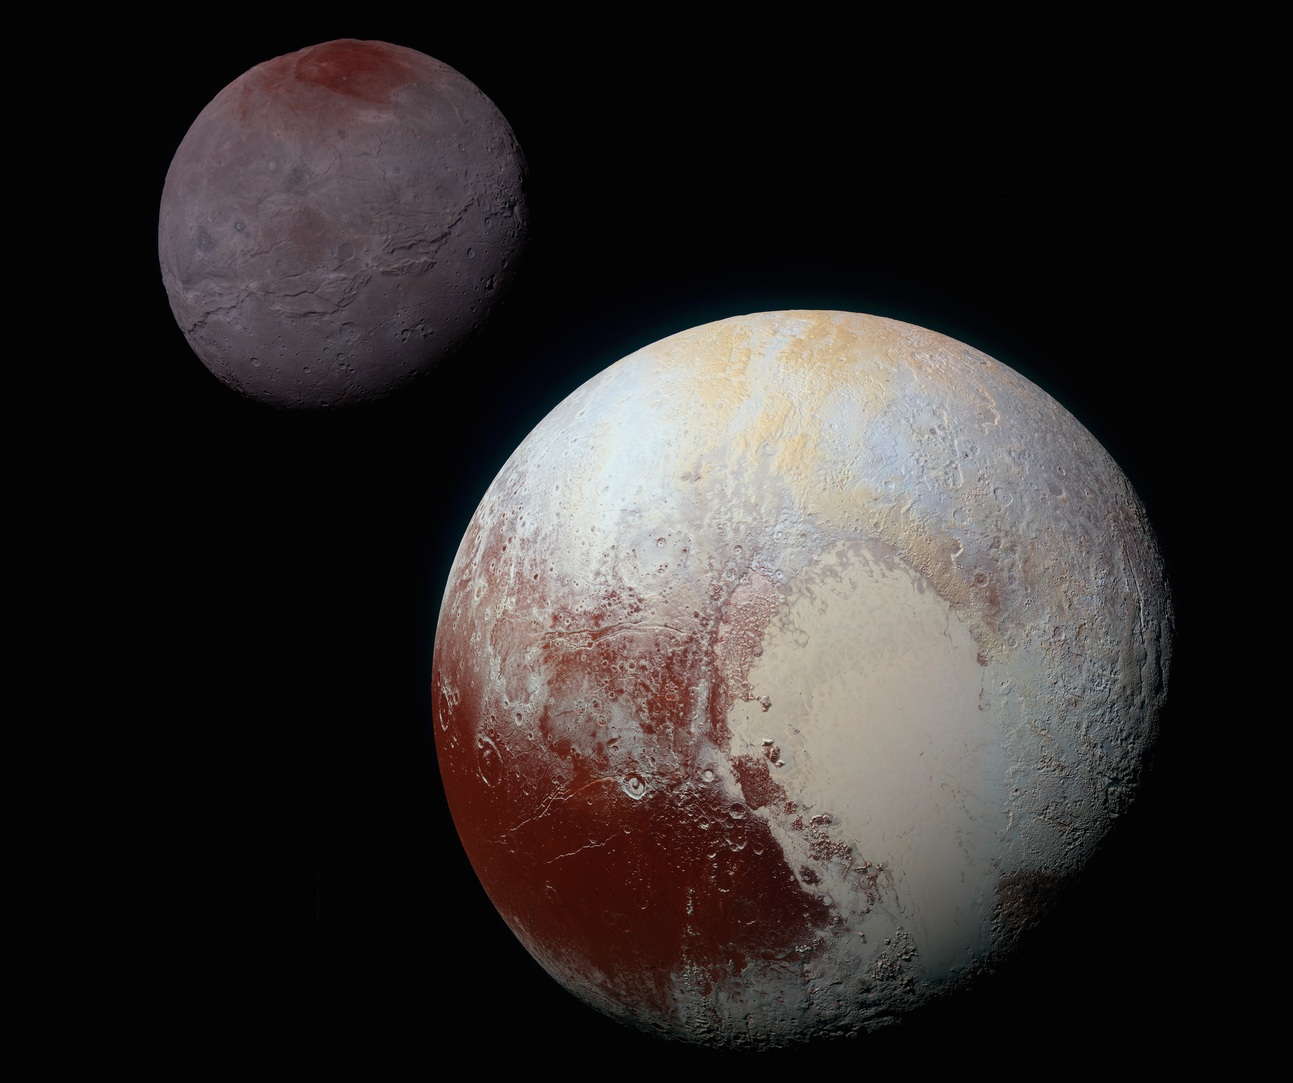 Charon (left) and Pluto (right) at the same scale. Charon is 1,212 km in diameter, Pluto 2,370 km. - Image Credit: NASA/Johns Hopkins University Applied Physics Laboratory/Southwest Research Institute